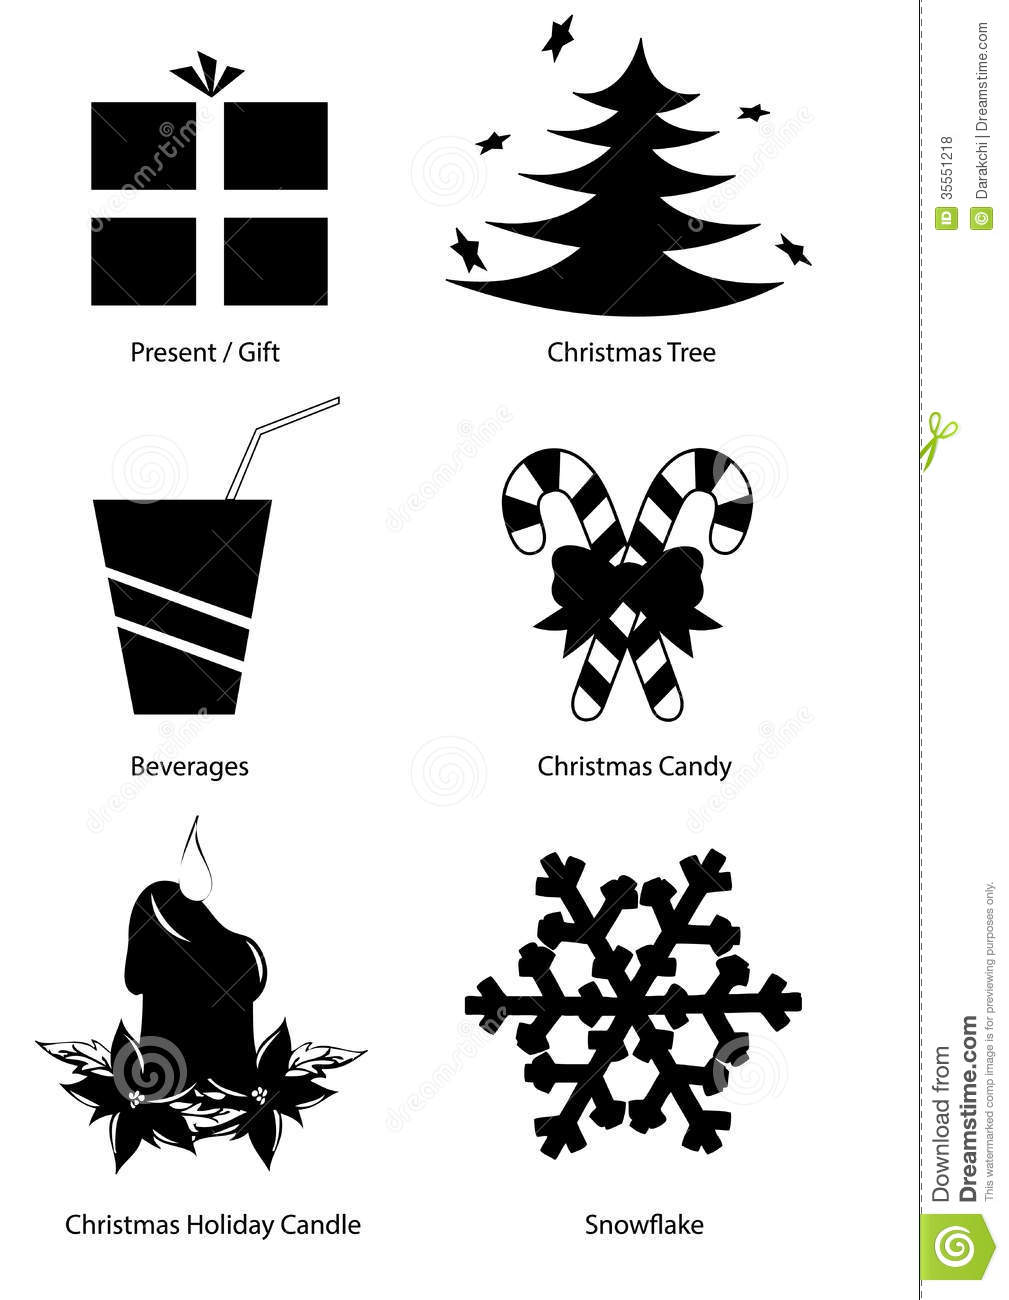 Black And White Christmas Clipart.16 Black Vector Art Christmas Images Christmas Tree Vector